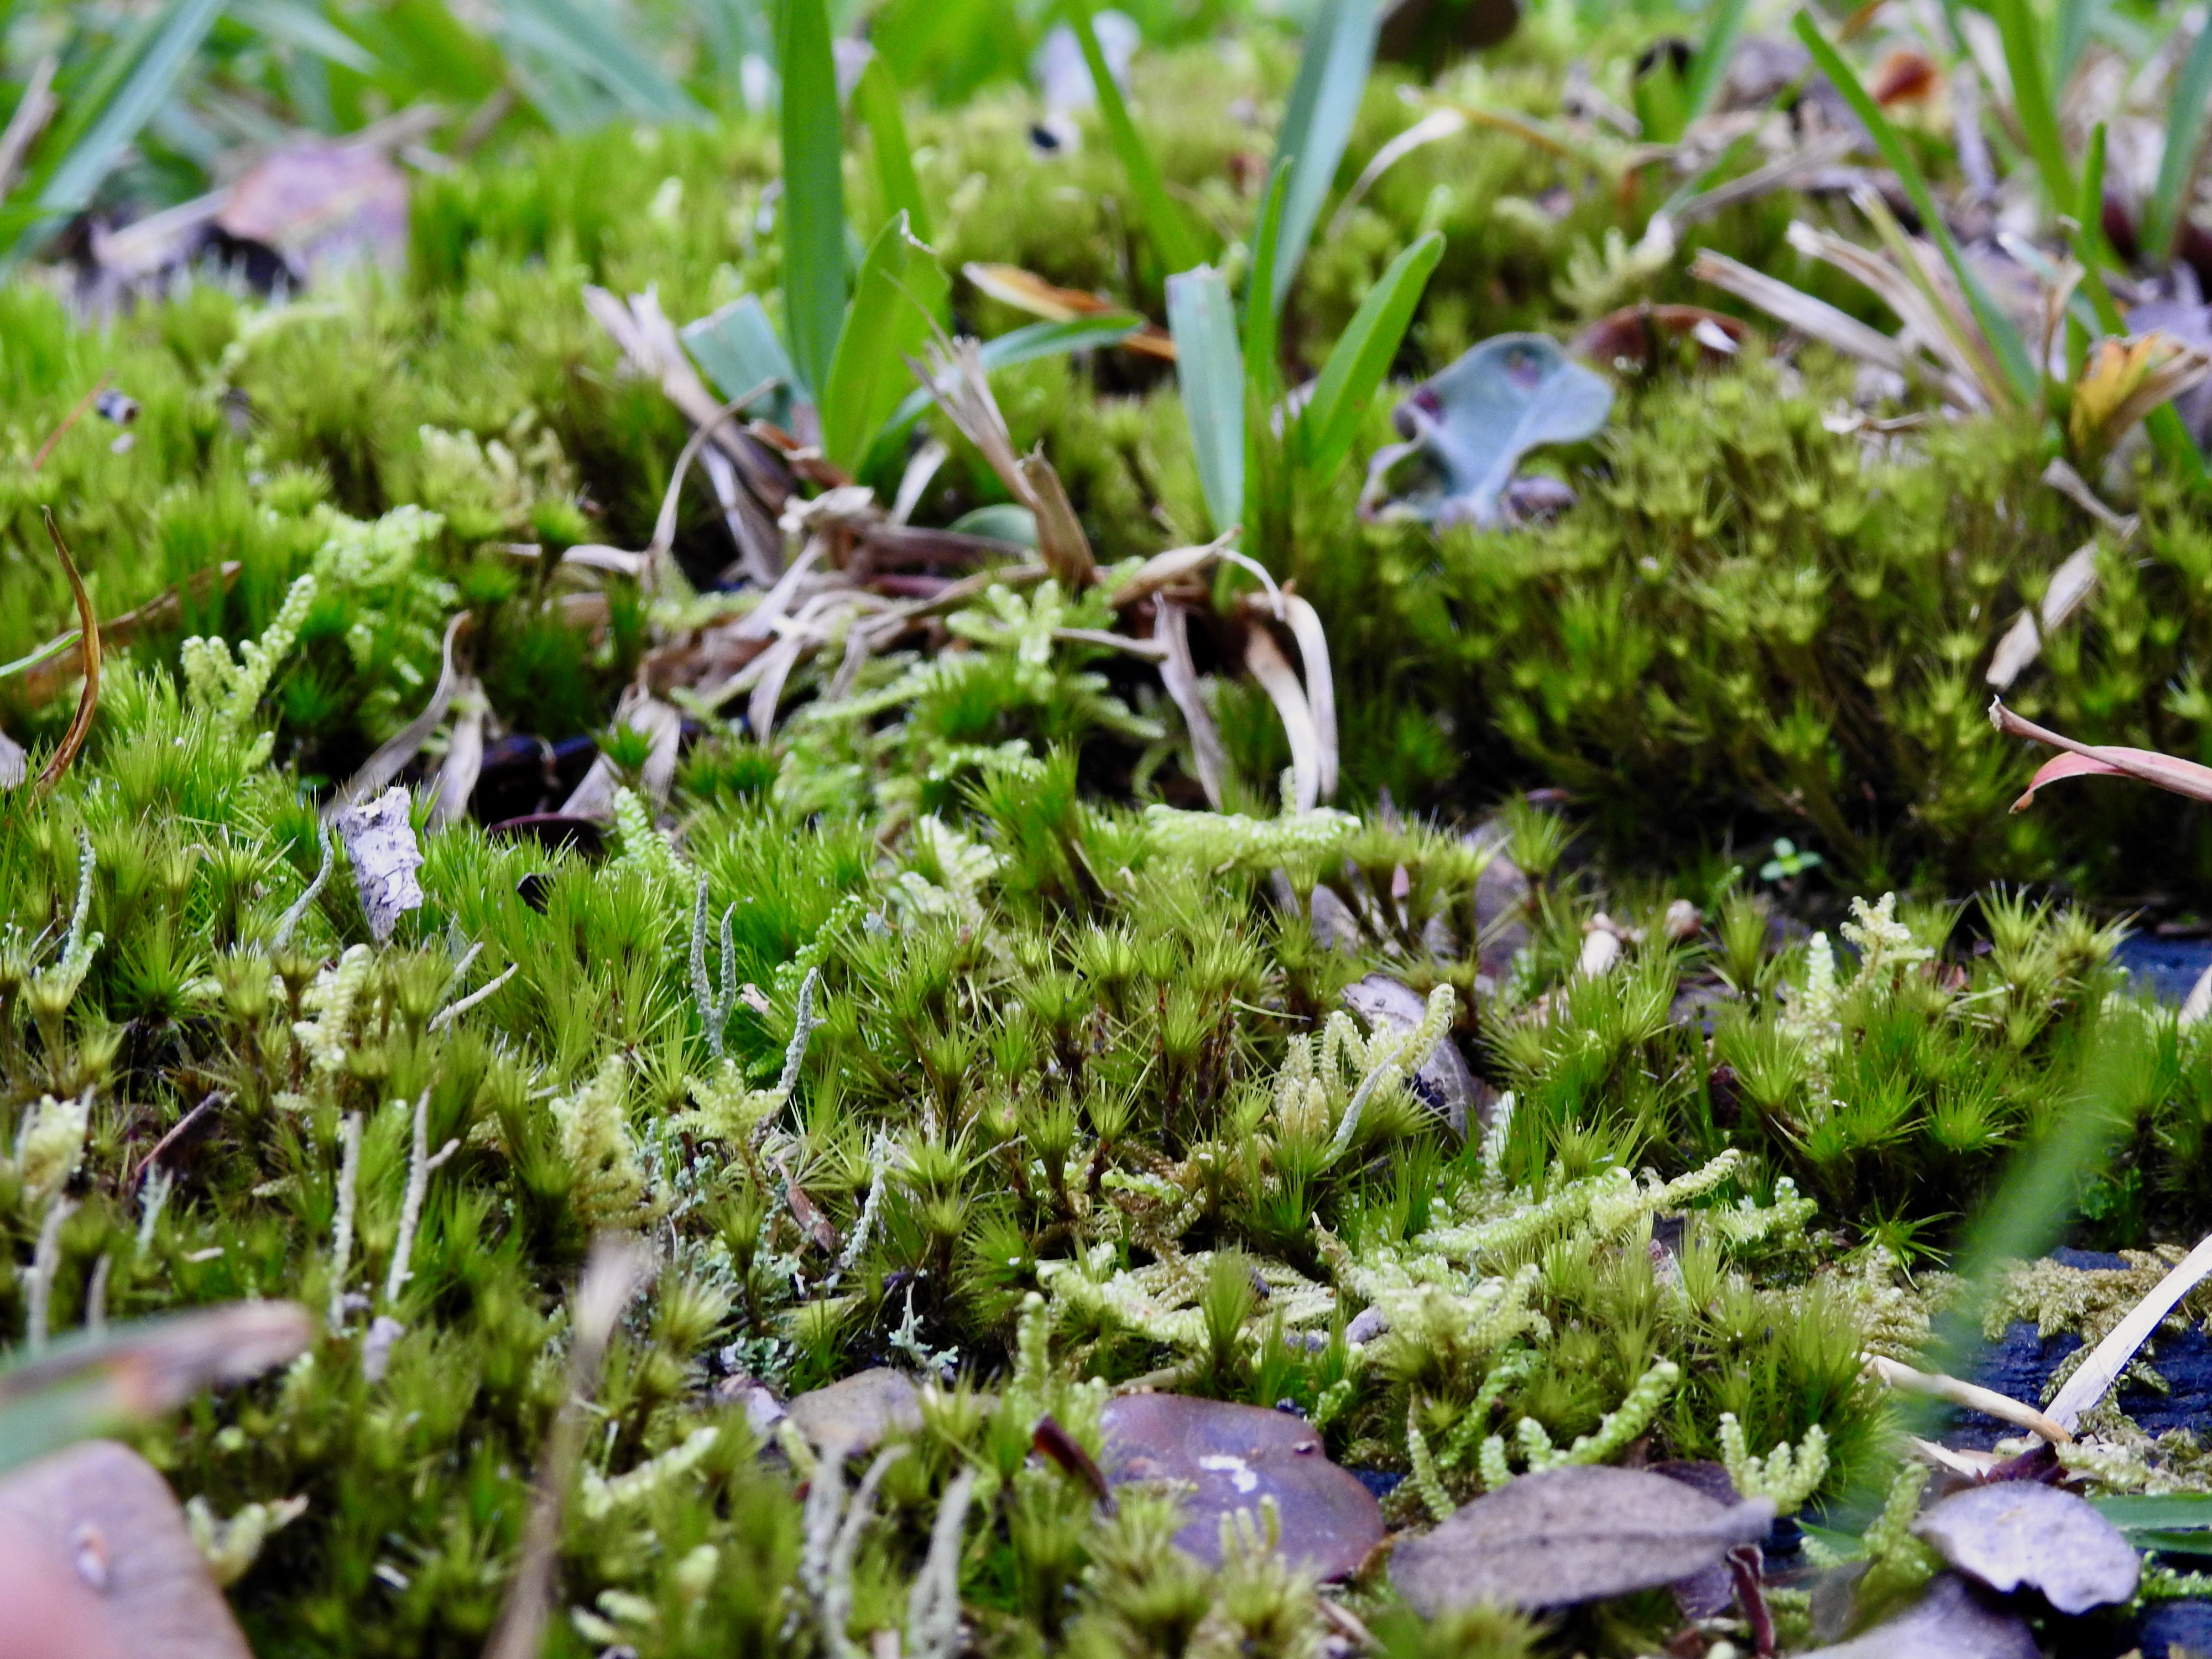 A close-up photo of a patch of small moss growing, contrasted with an occasional stone and blade of grass.